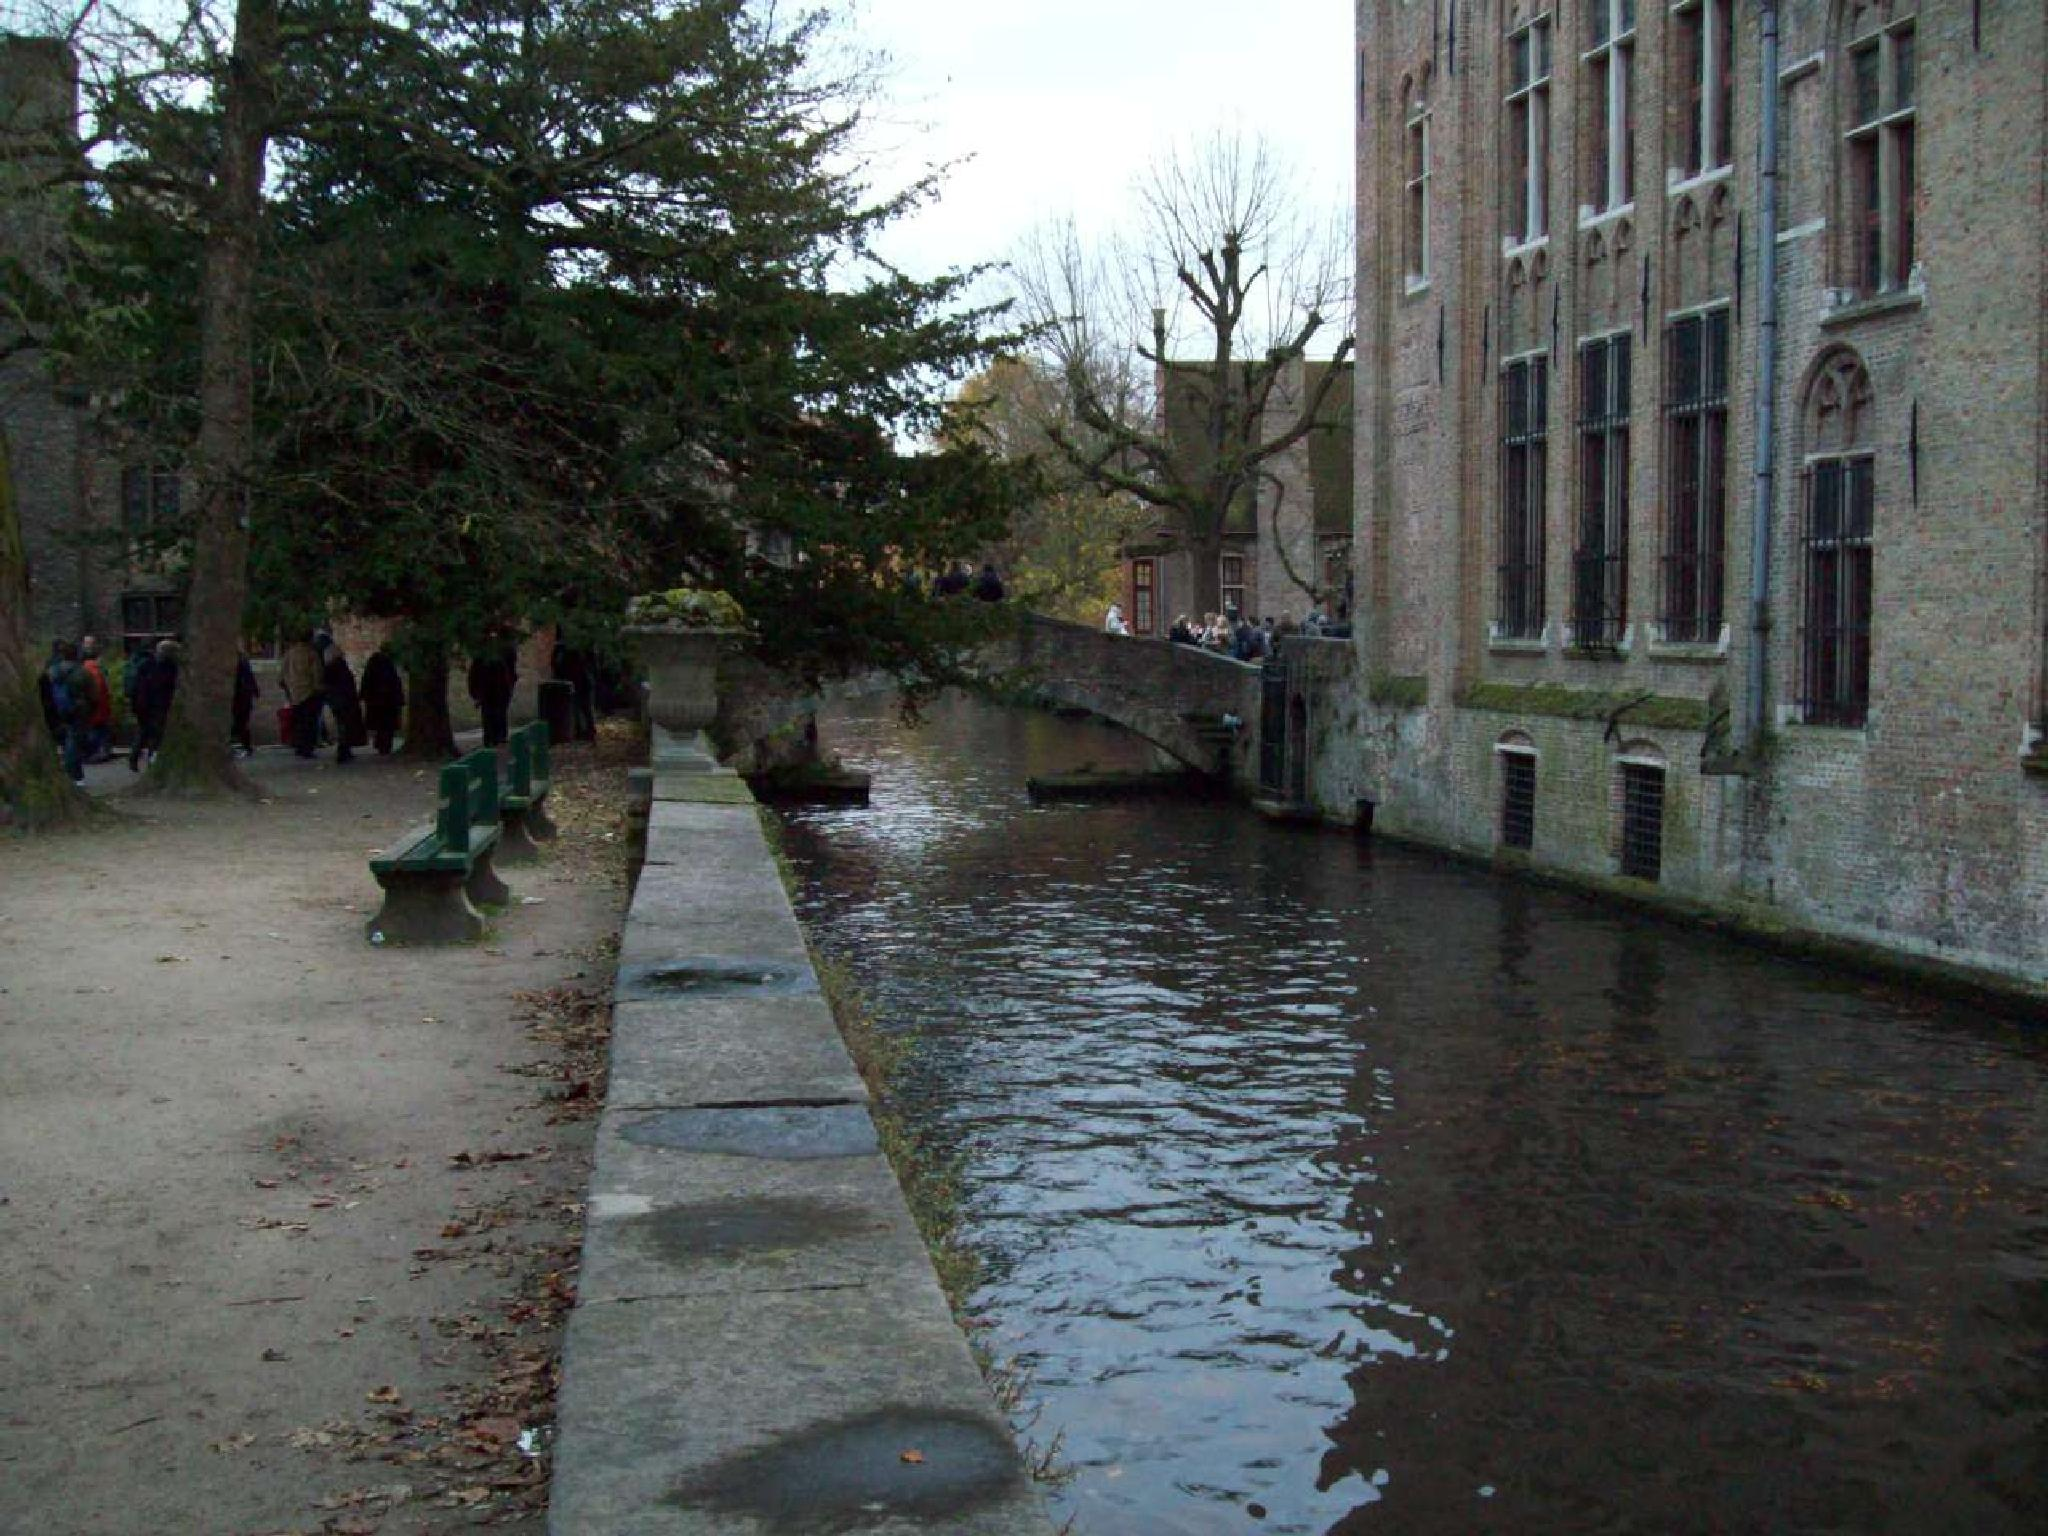 Looks cold and wet, Bruges at it's best by Lana-D (GMT+1)